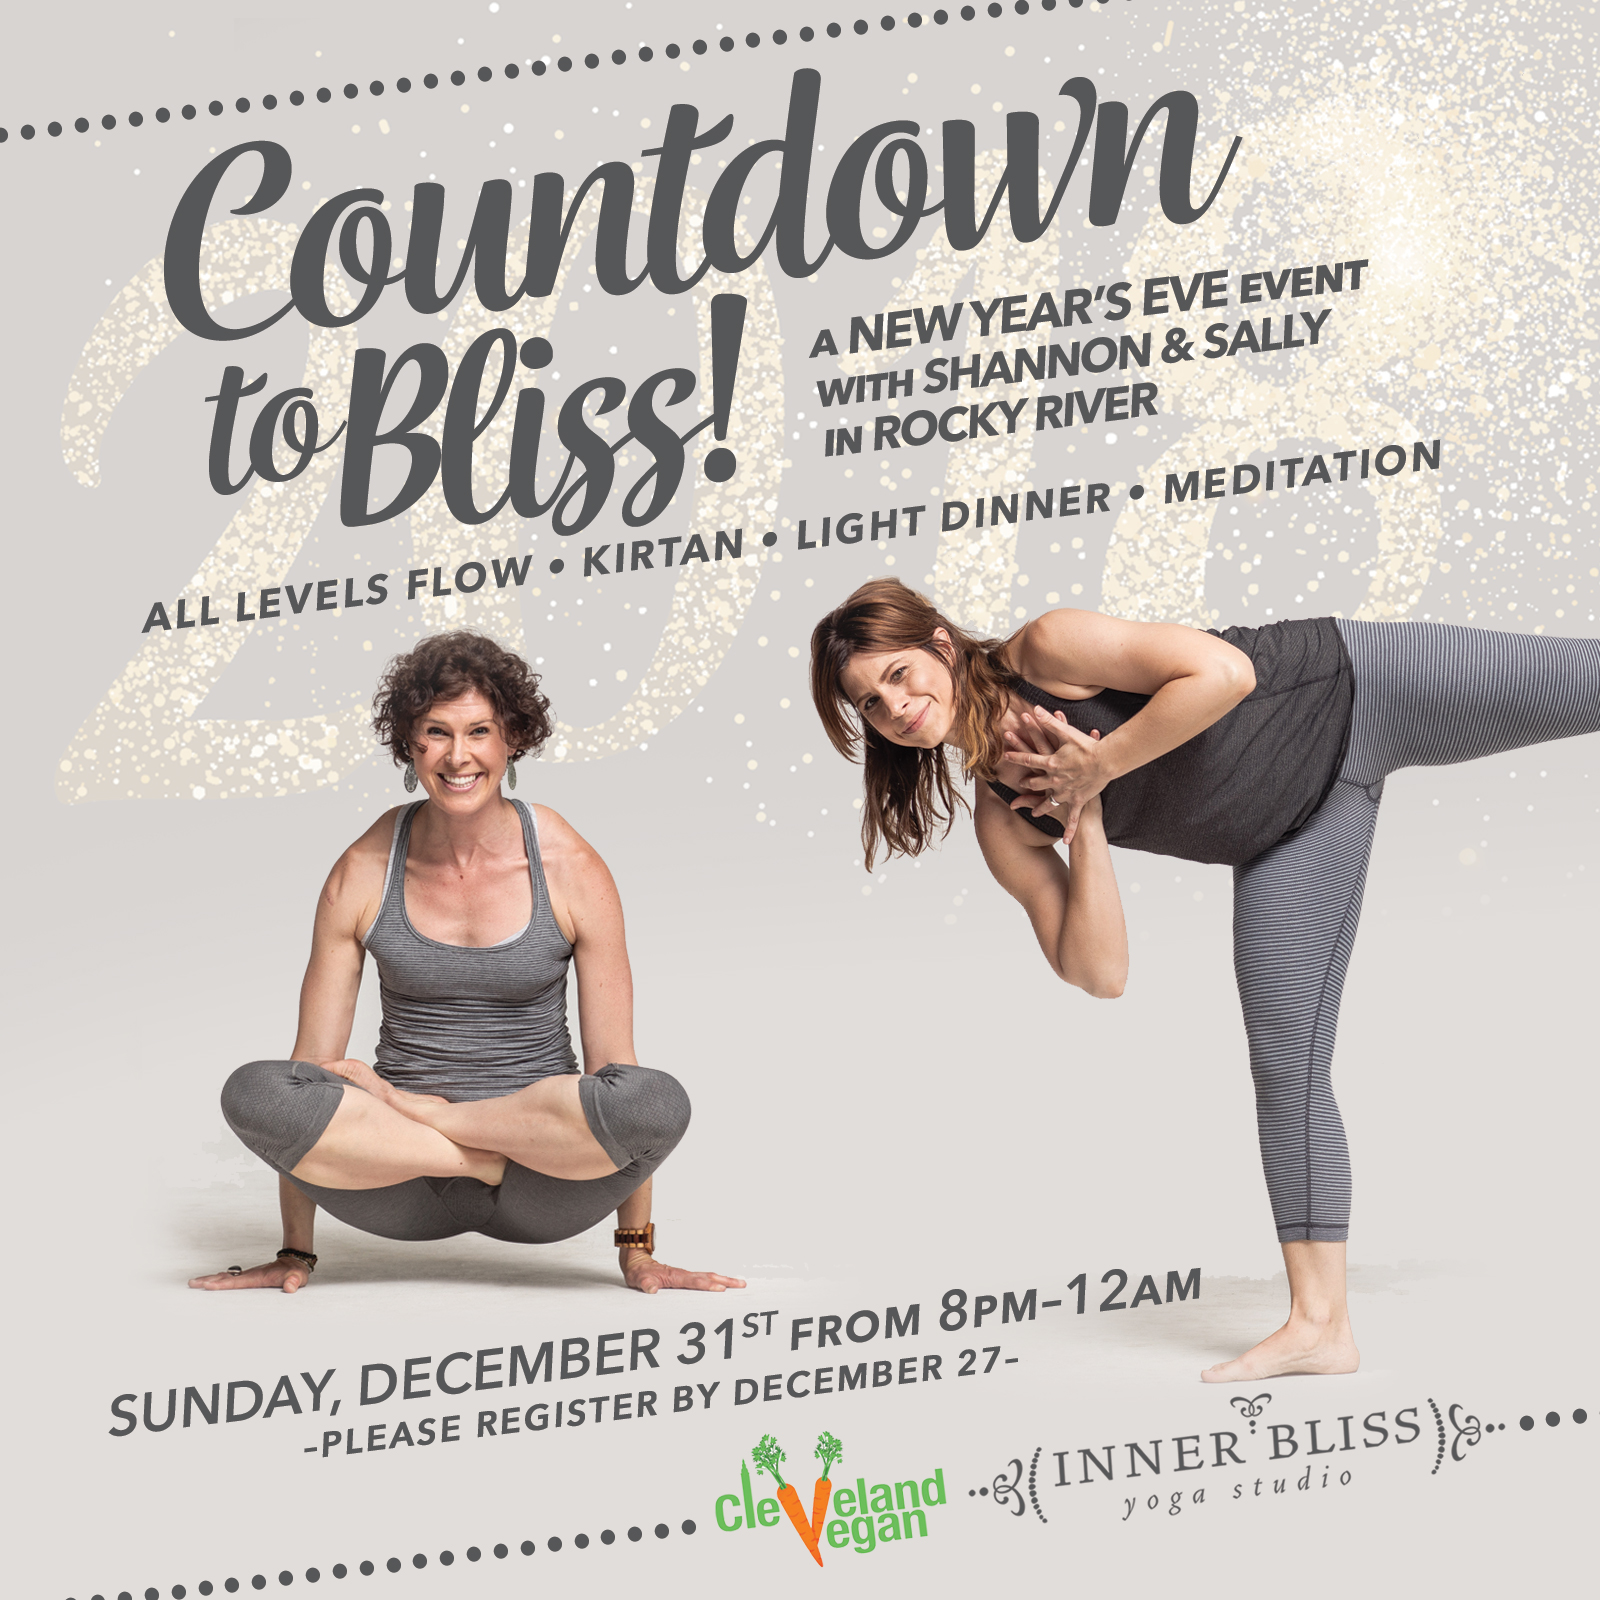 iby-countdown-to-bliss.jpg